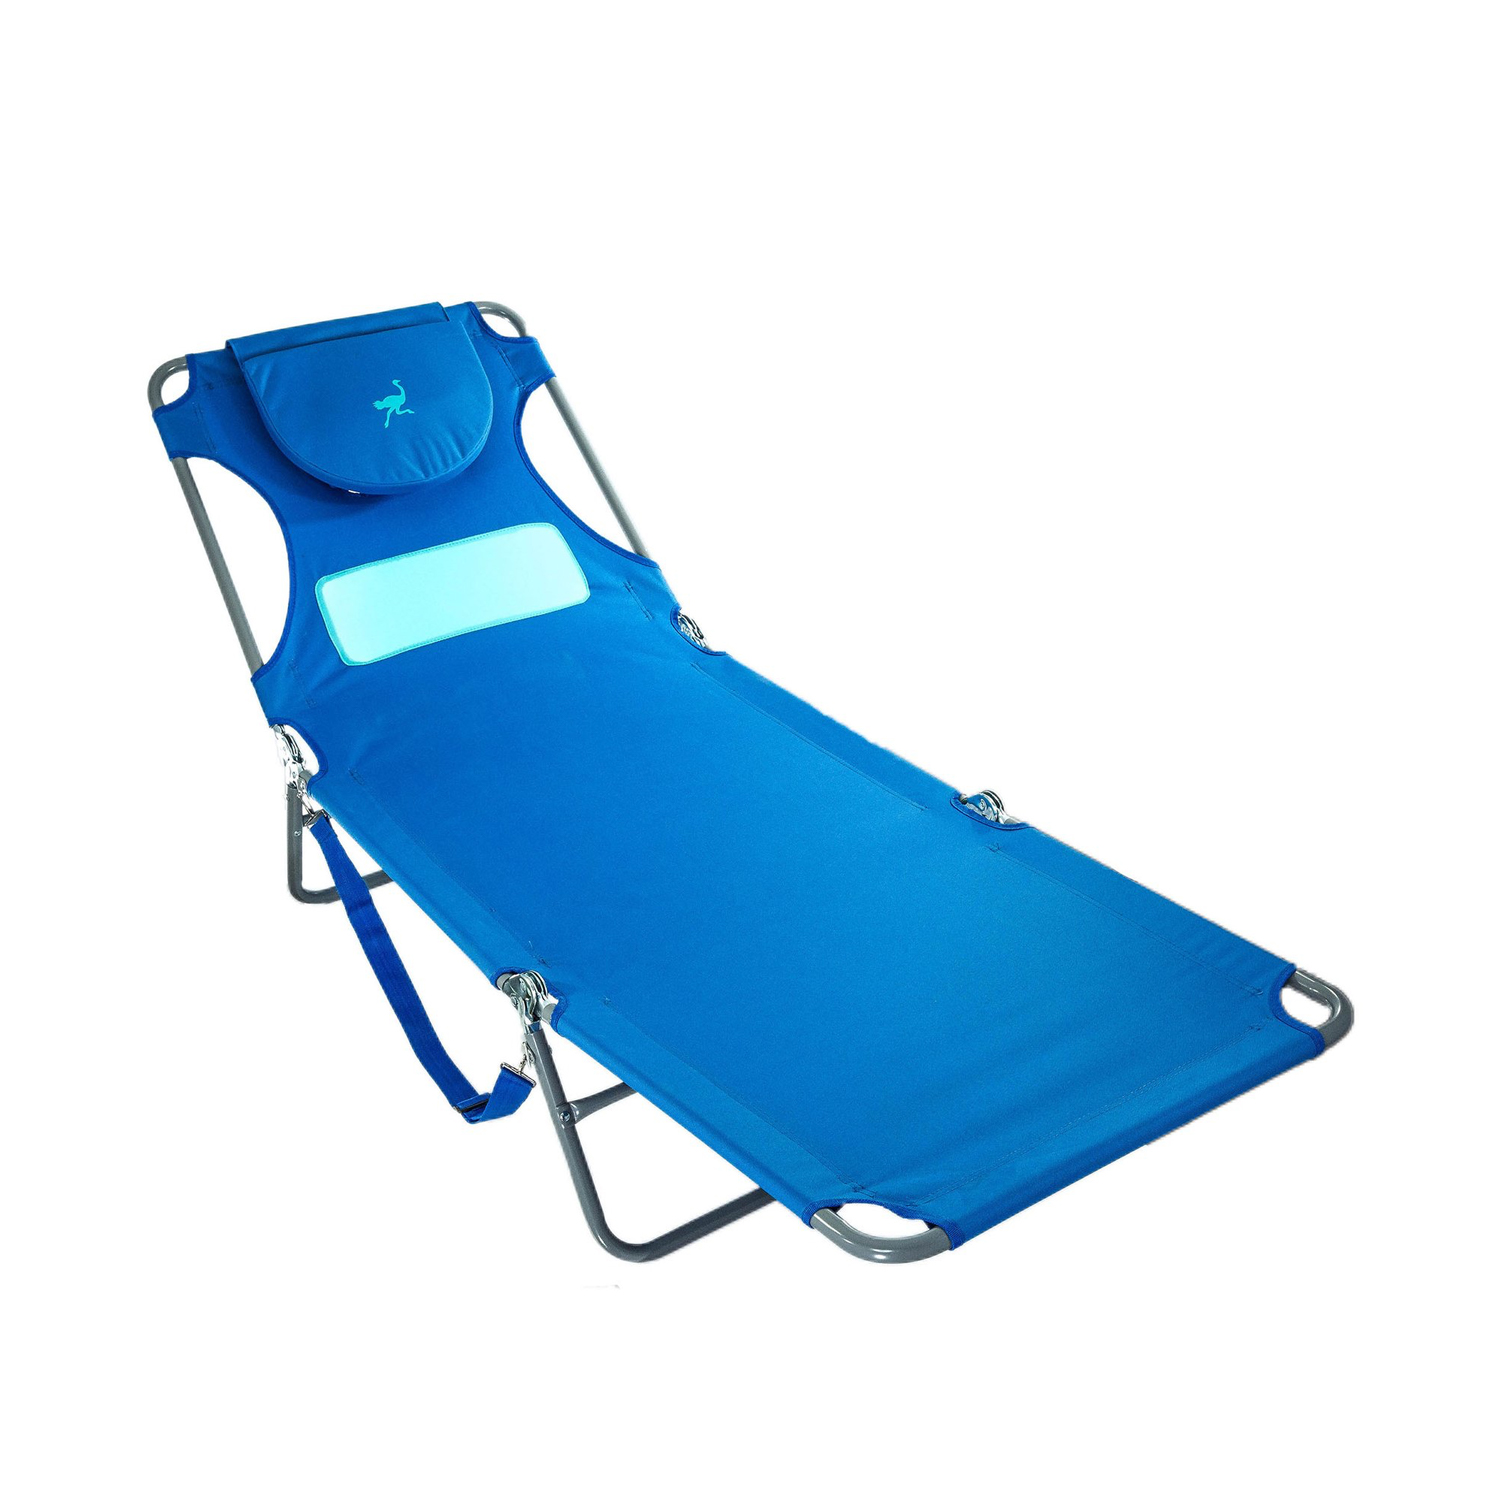 Comfort Lounger Face Down Sunbathing Chaise Lounge Beach Chair Blue